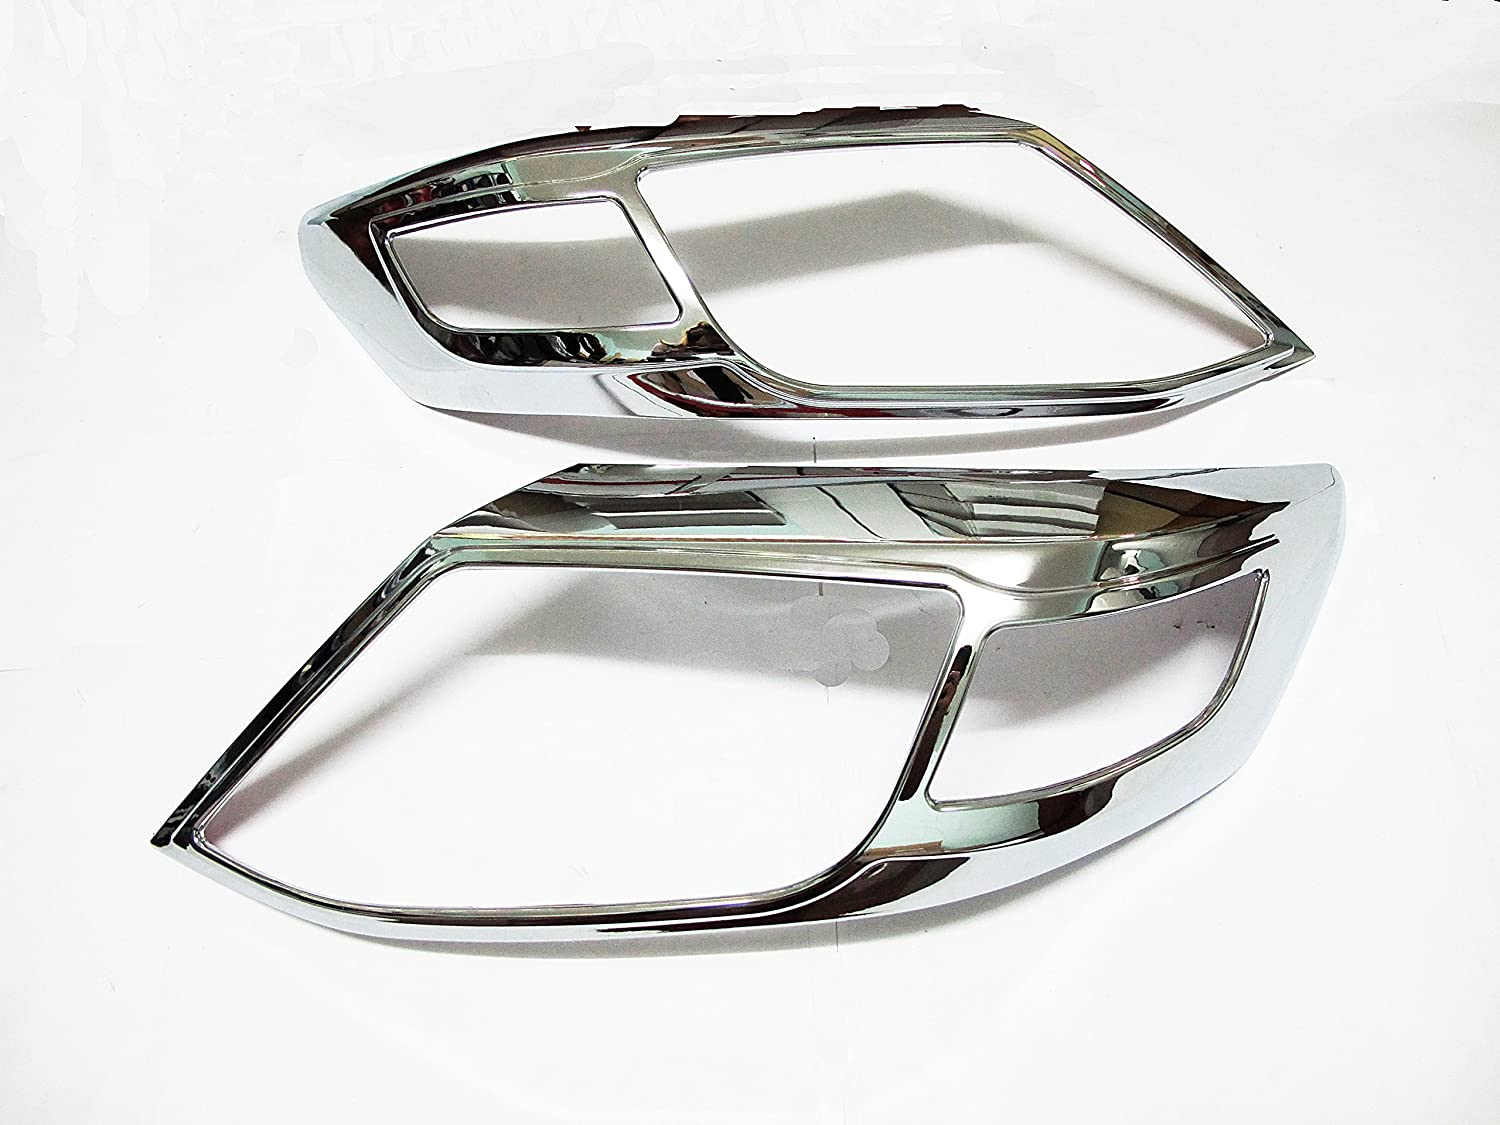 New Chrome Head Light Lamp Front Cover Trim for Toyota Fortuner 2011 2012 2013+